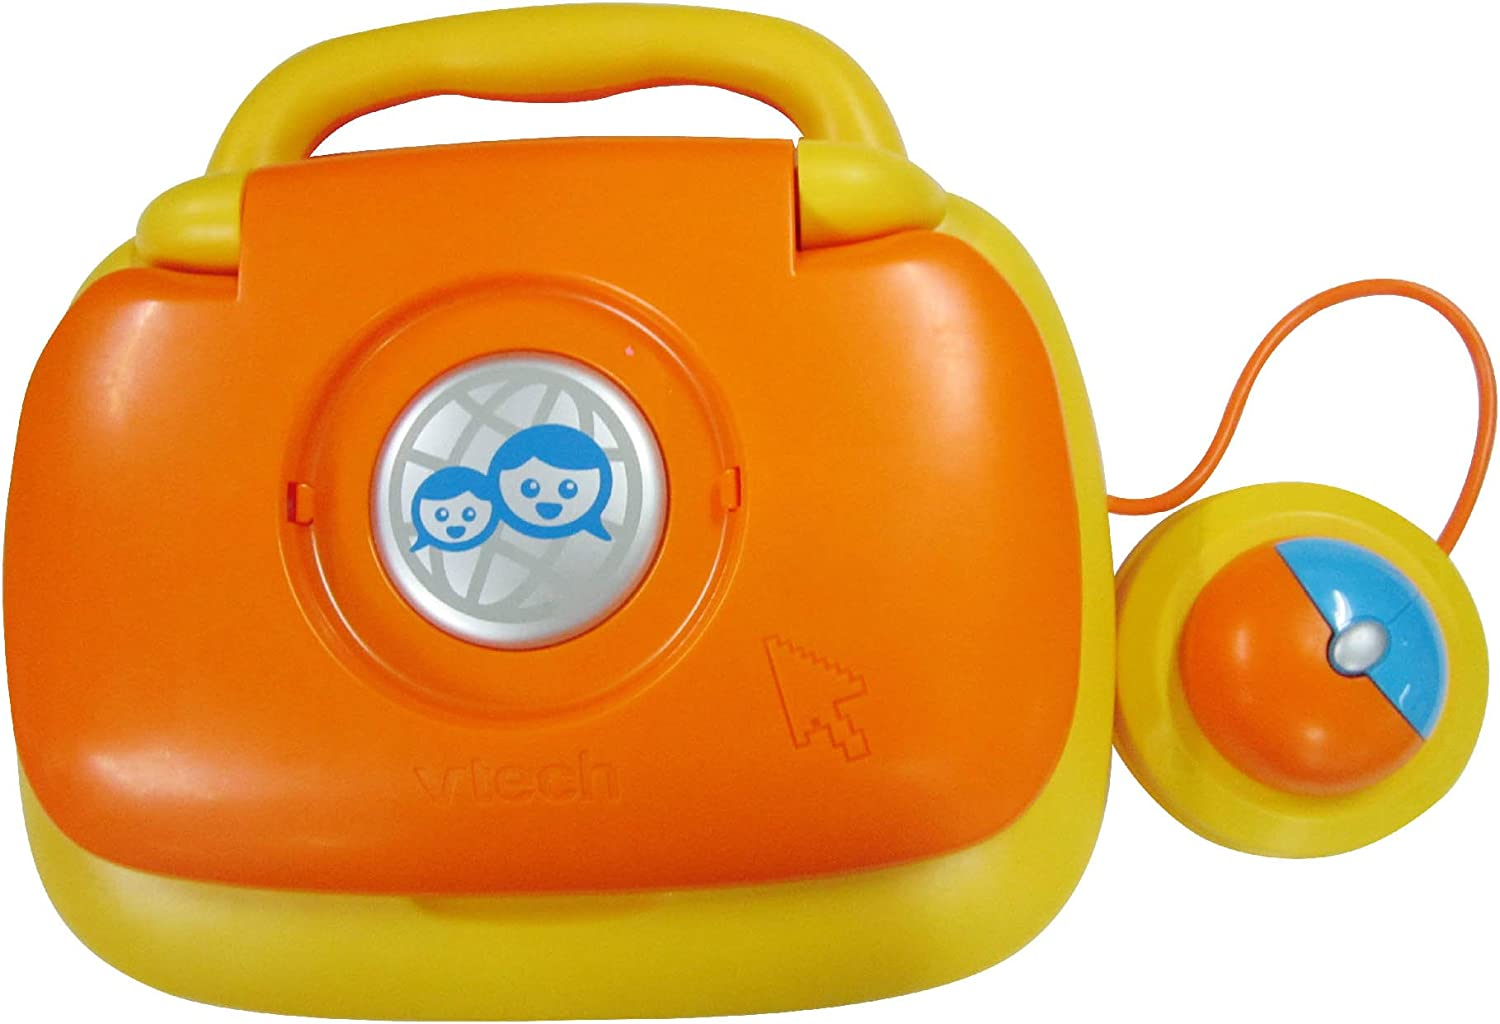 Vtech - Tote & Go Laptop with Web Connect - 2011 Version